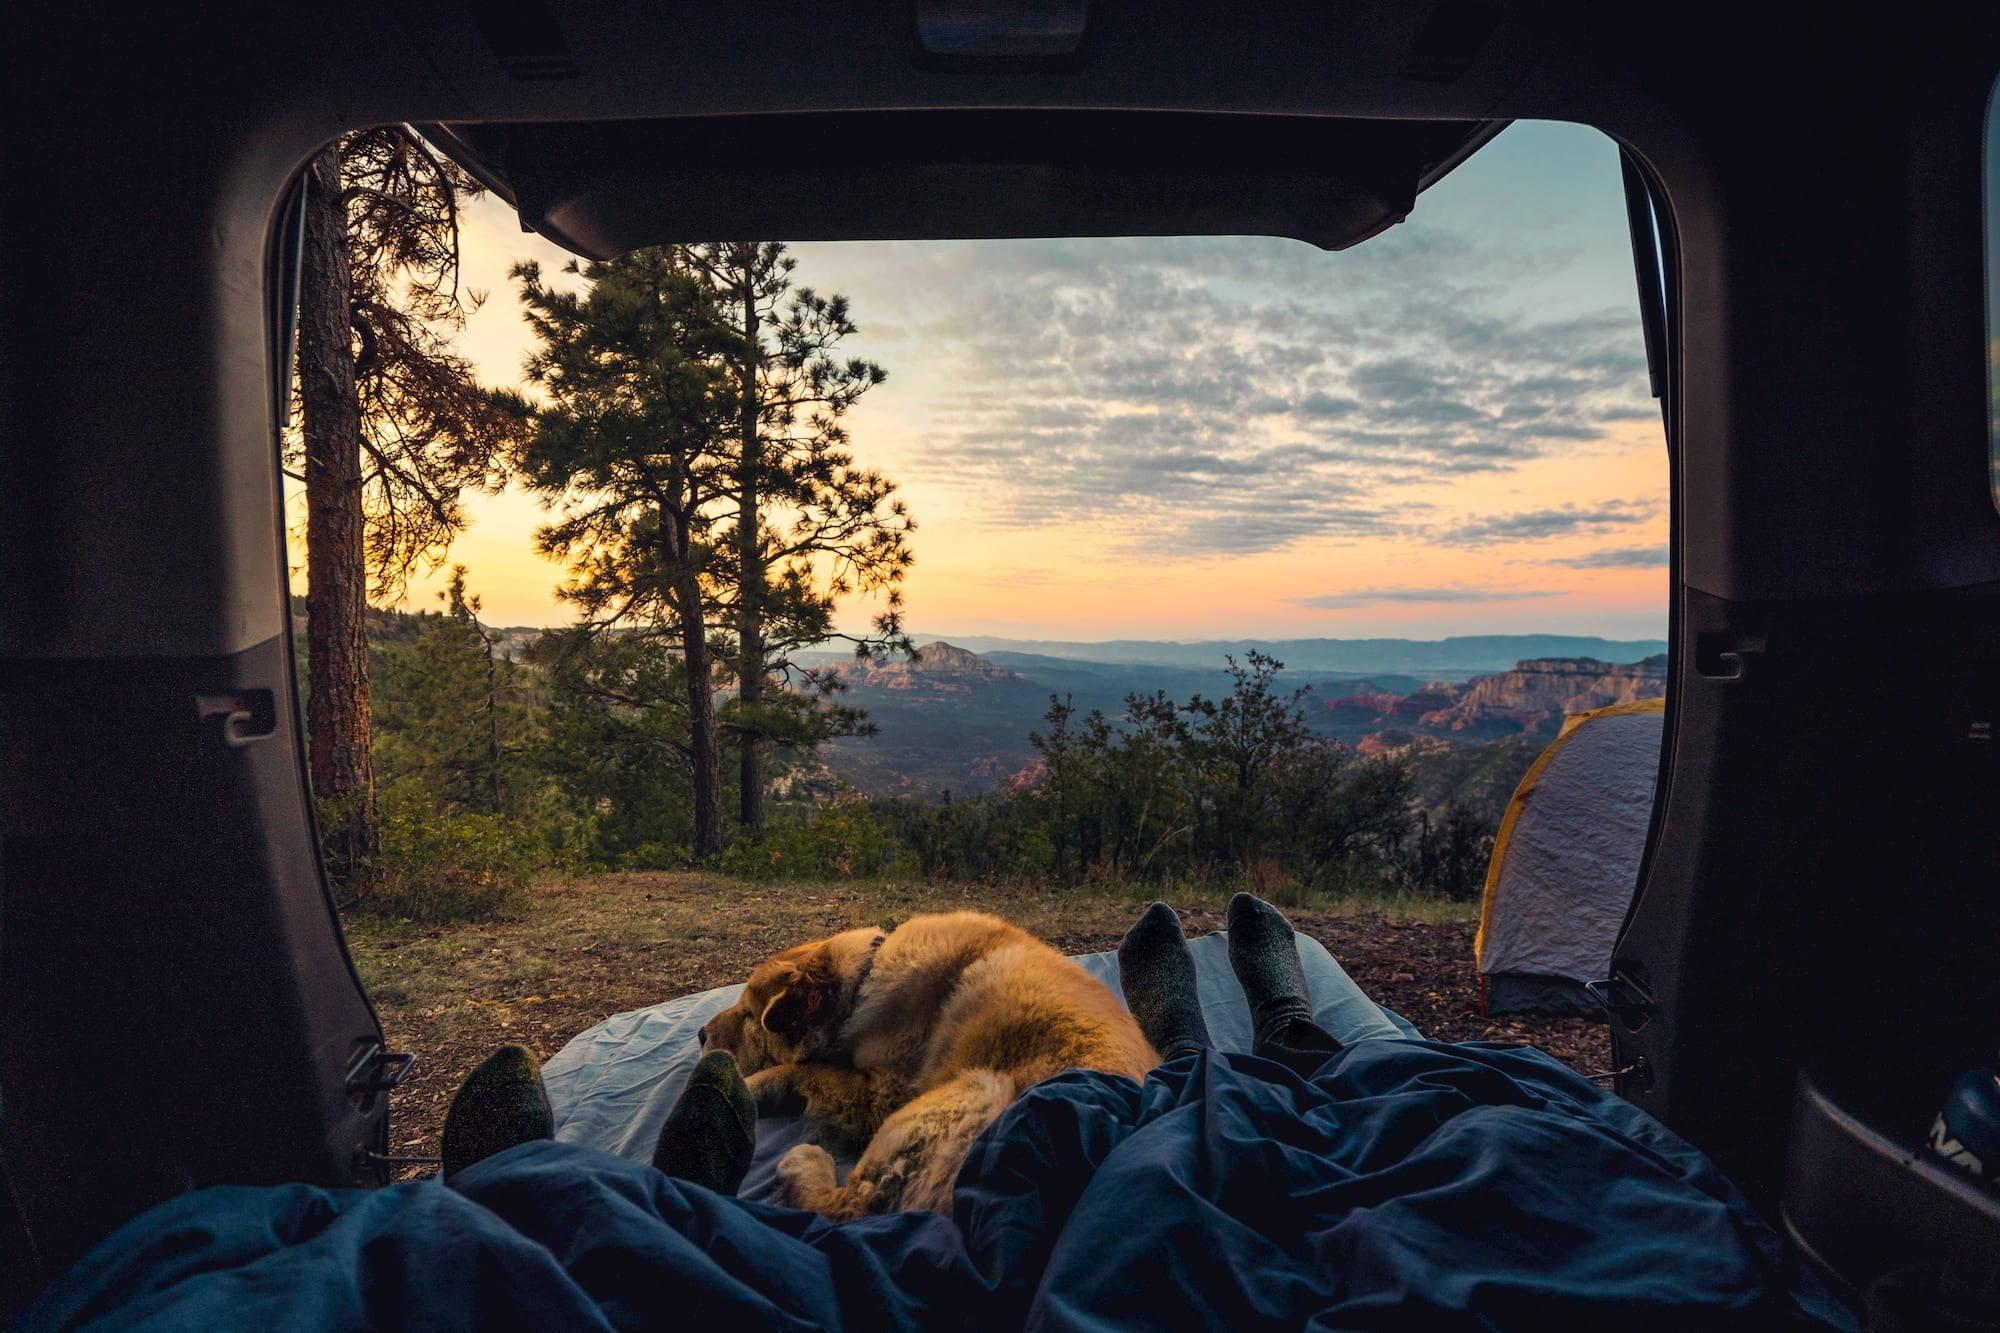 Two people and dog sharing camping blanket in the back seat of a car in the mountains.